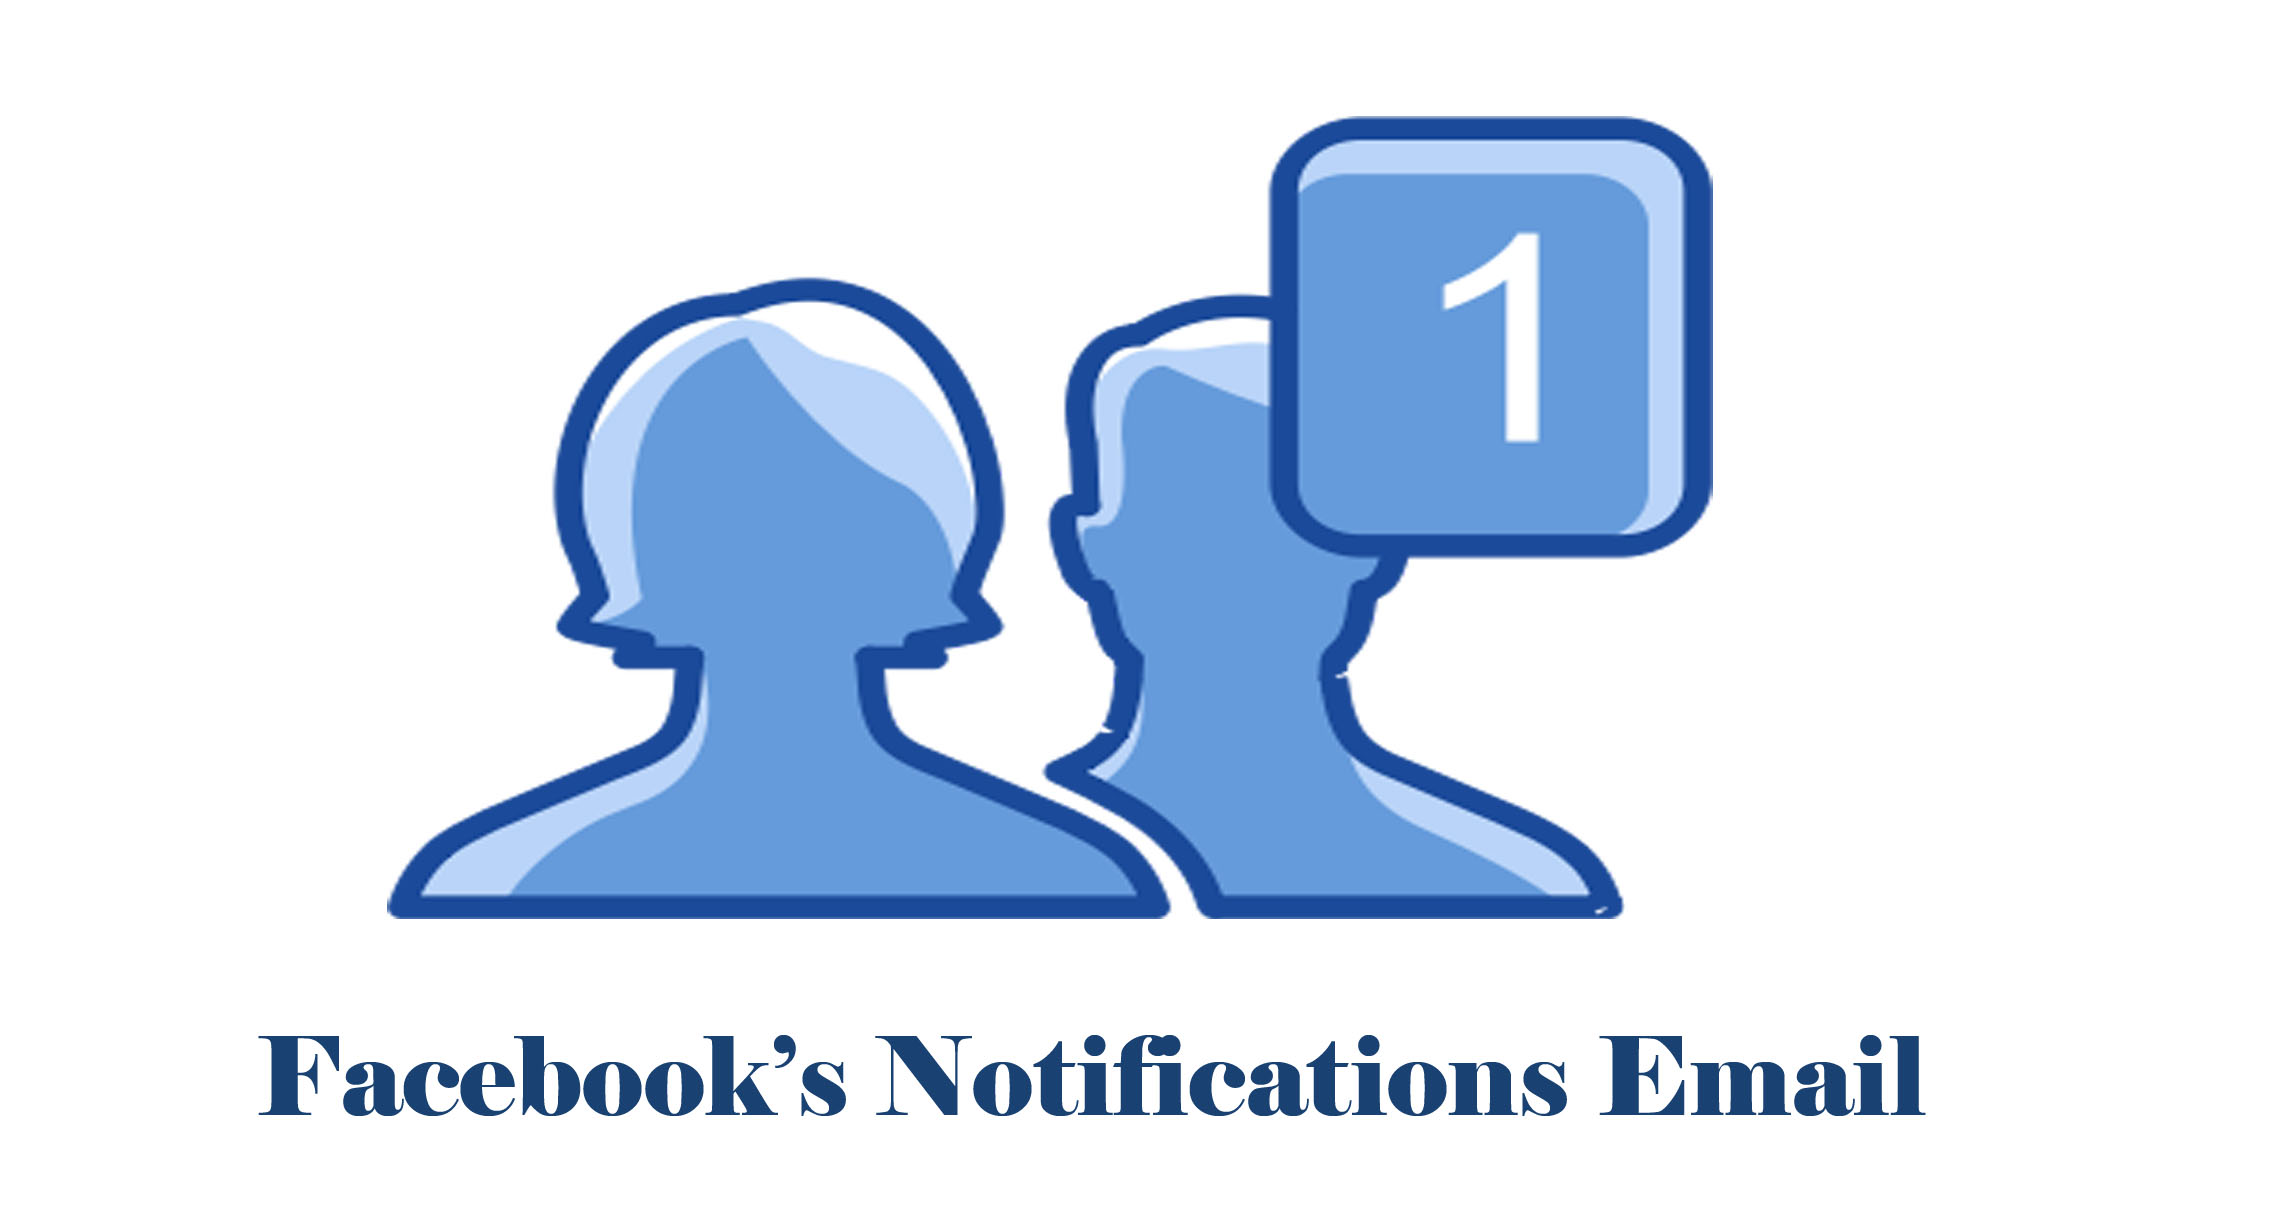 Facebook's Notifications Email - Alerts on Facebook